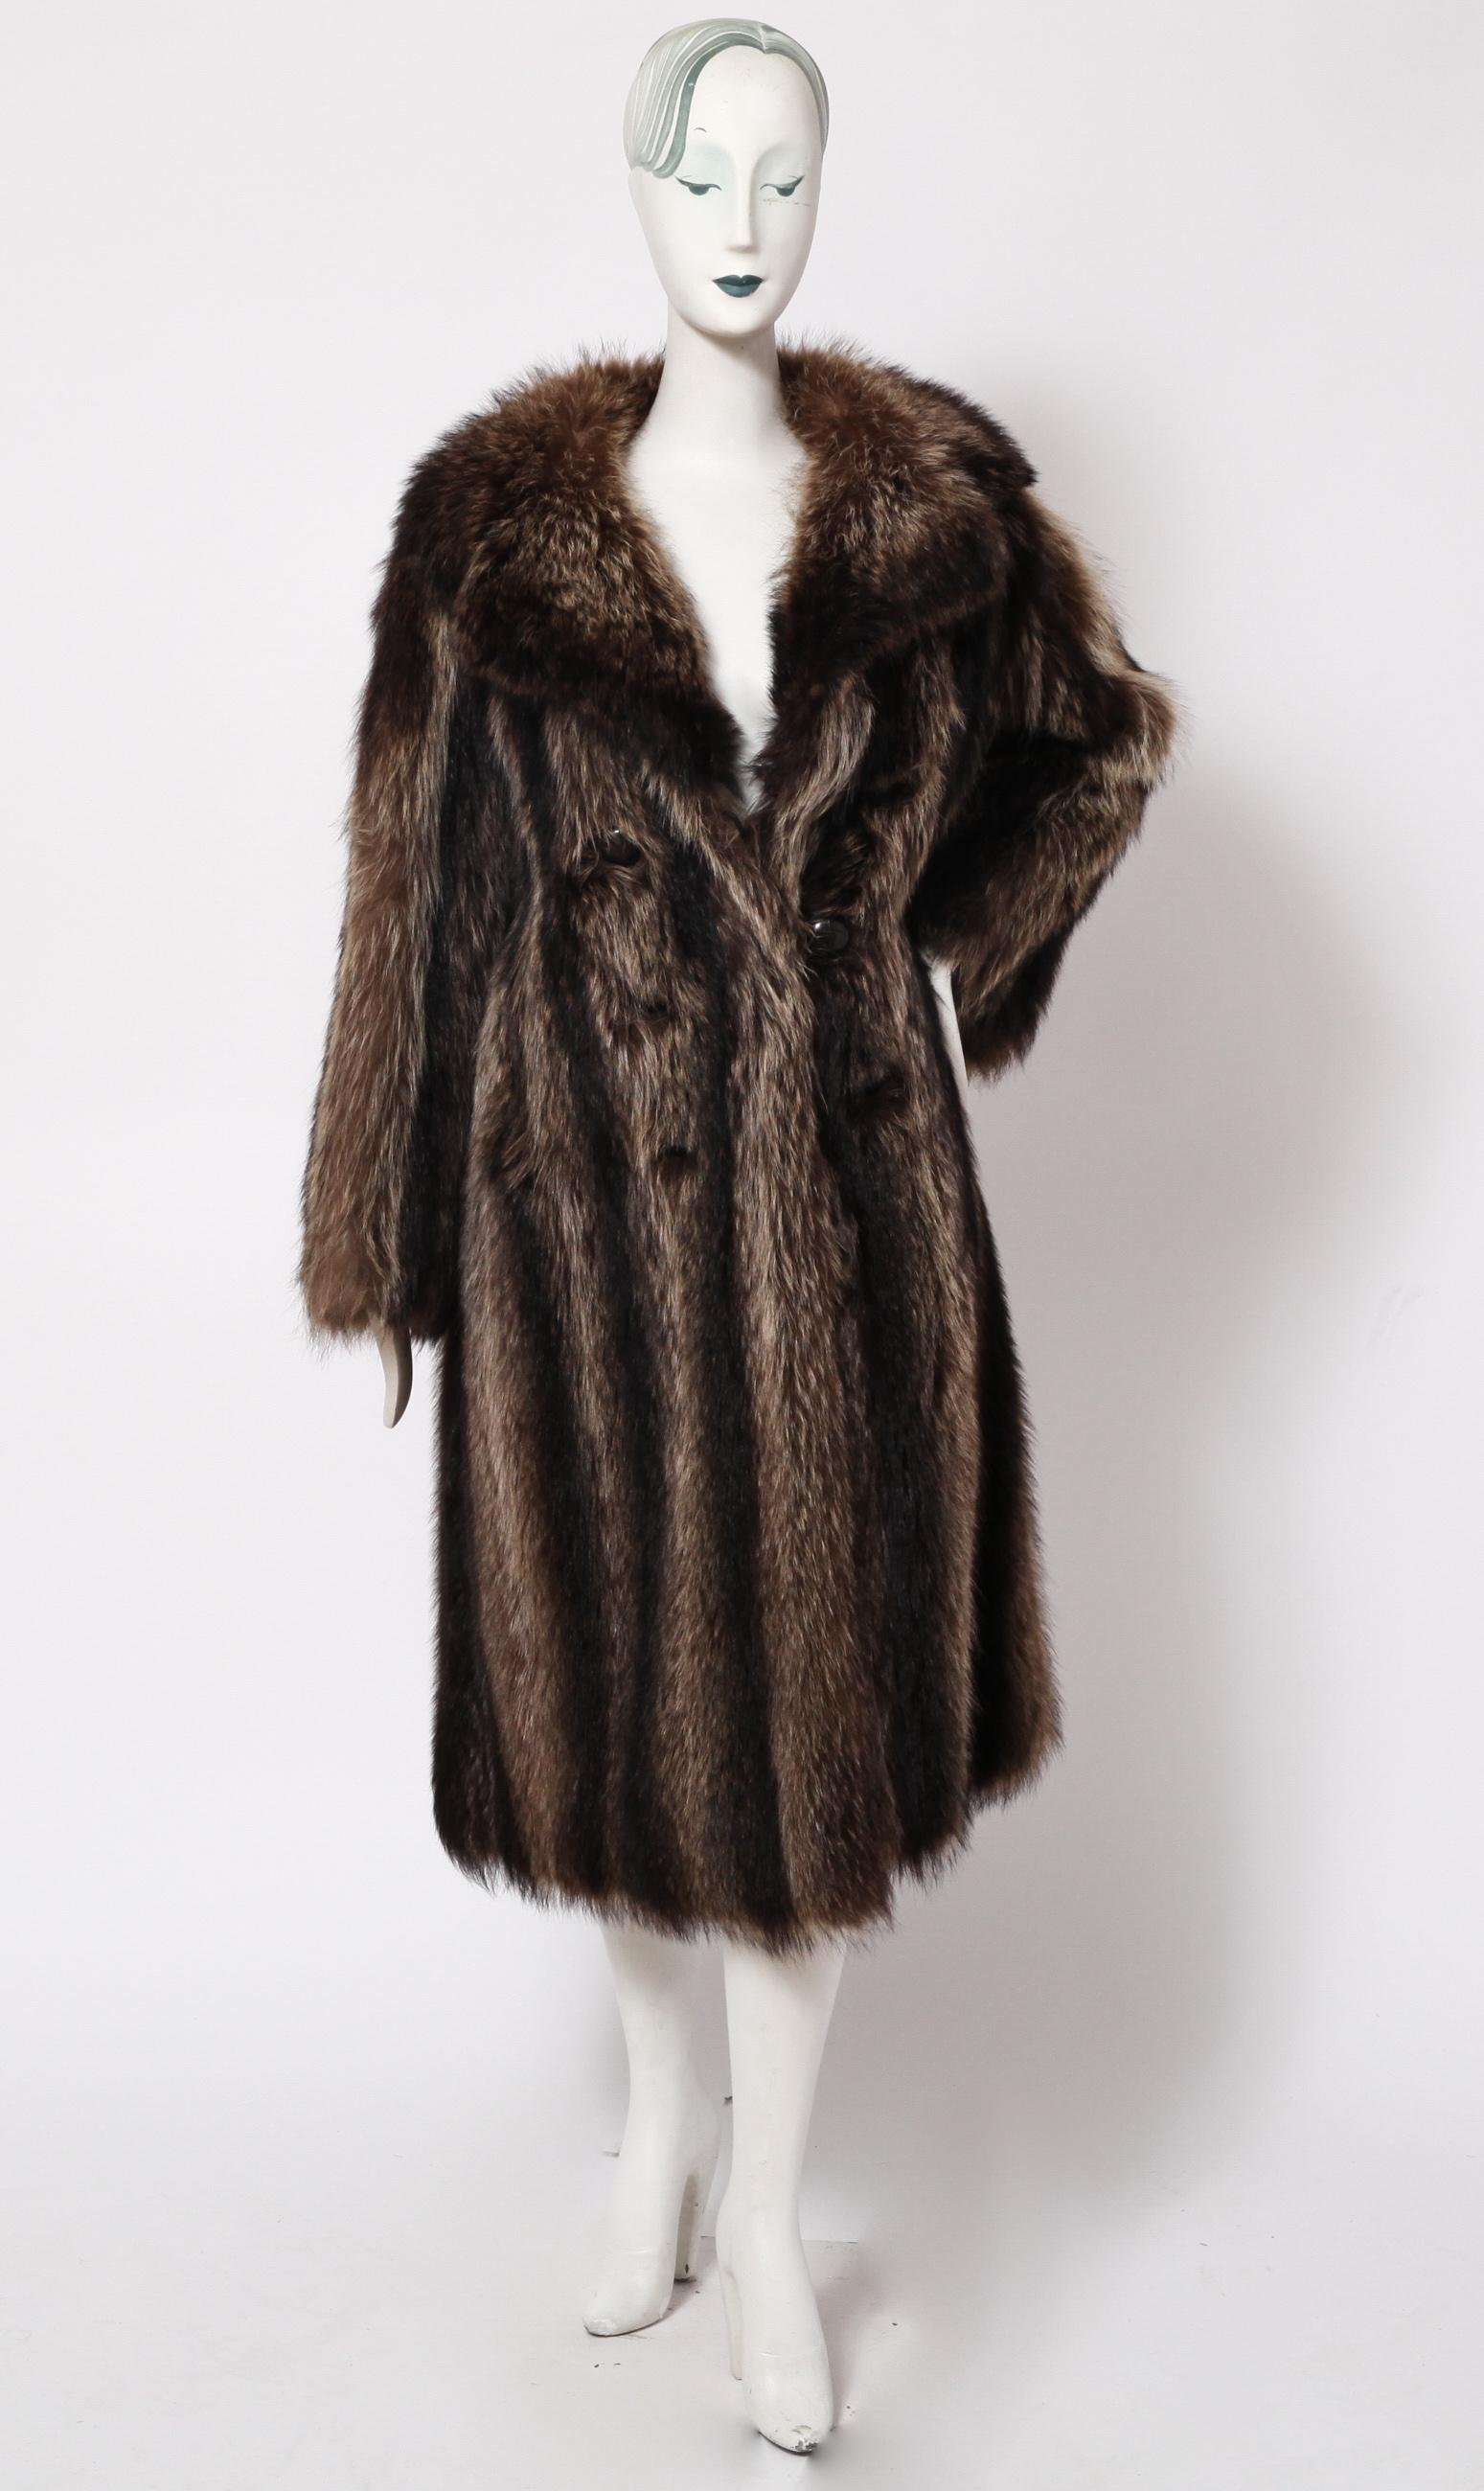 Edward Reilly & Co Ladies' Striped Fur Coat